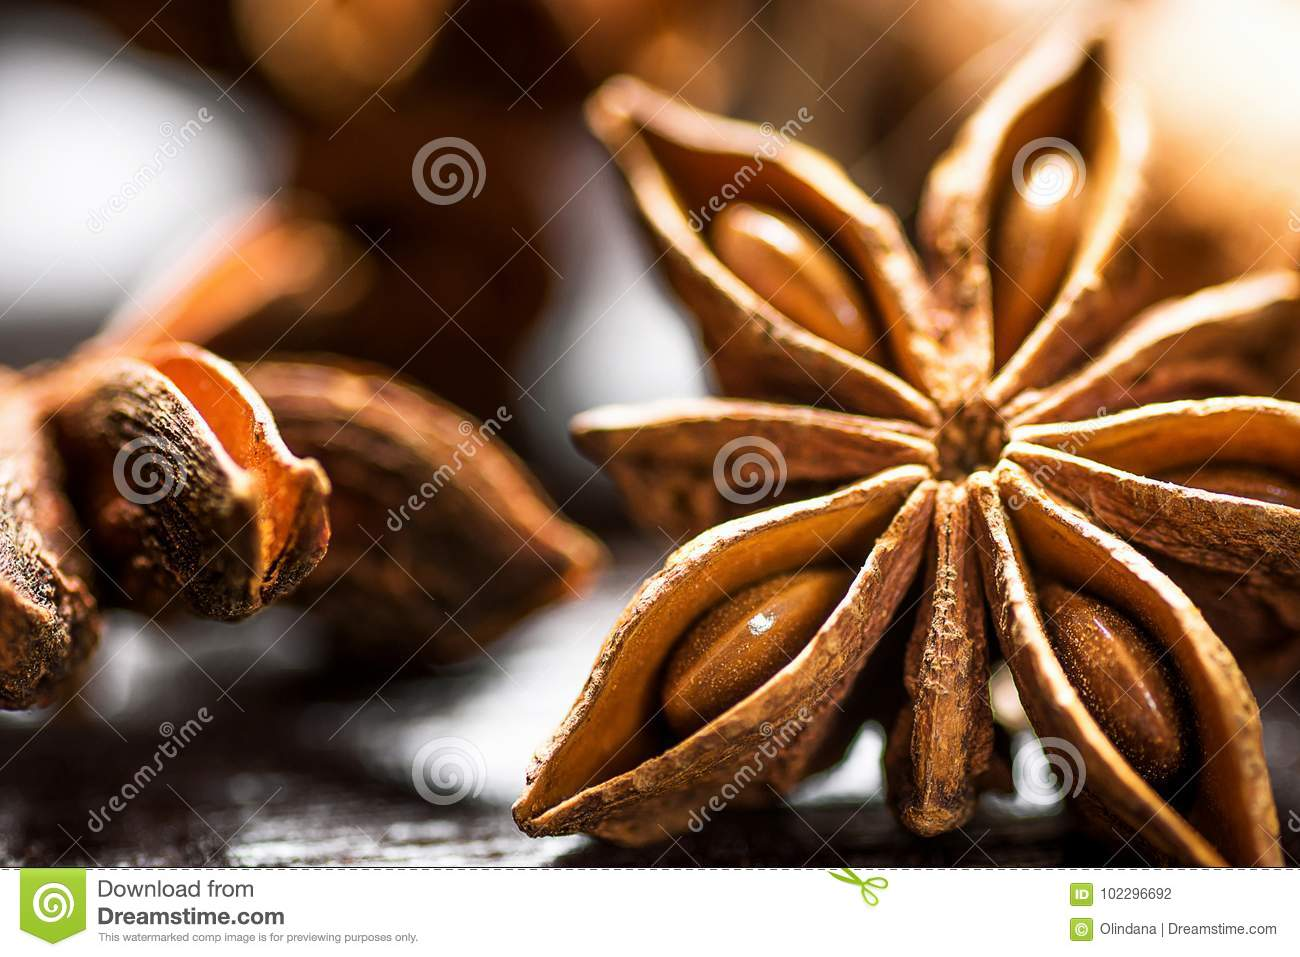 Christmas Baking Ingredients Cinnamon Sticks Anise Star Cloves Cardamom Scattered on Wood Background Macro of Details.